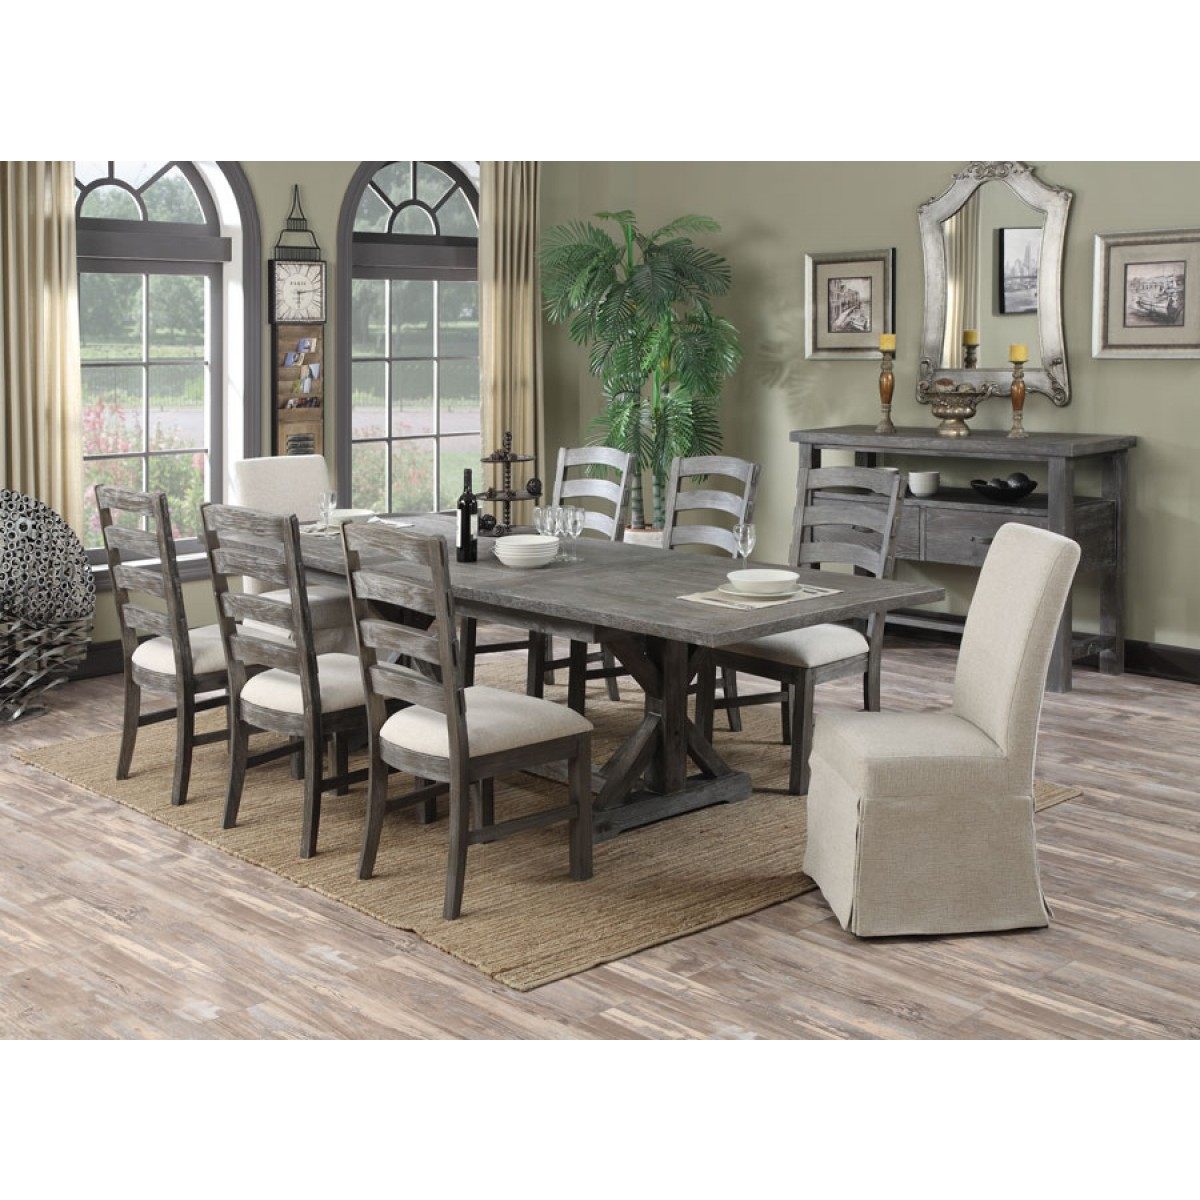 Rustic Urban Style 7pc Dining Set Mod Paladin